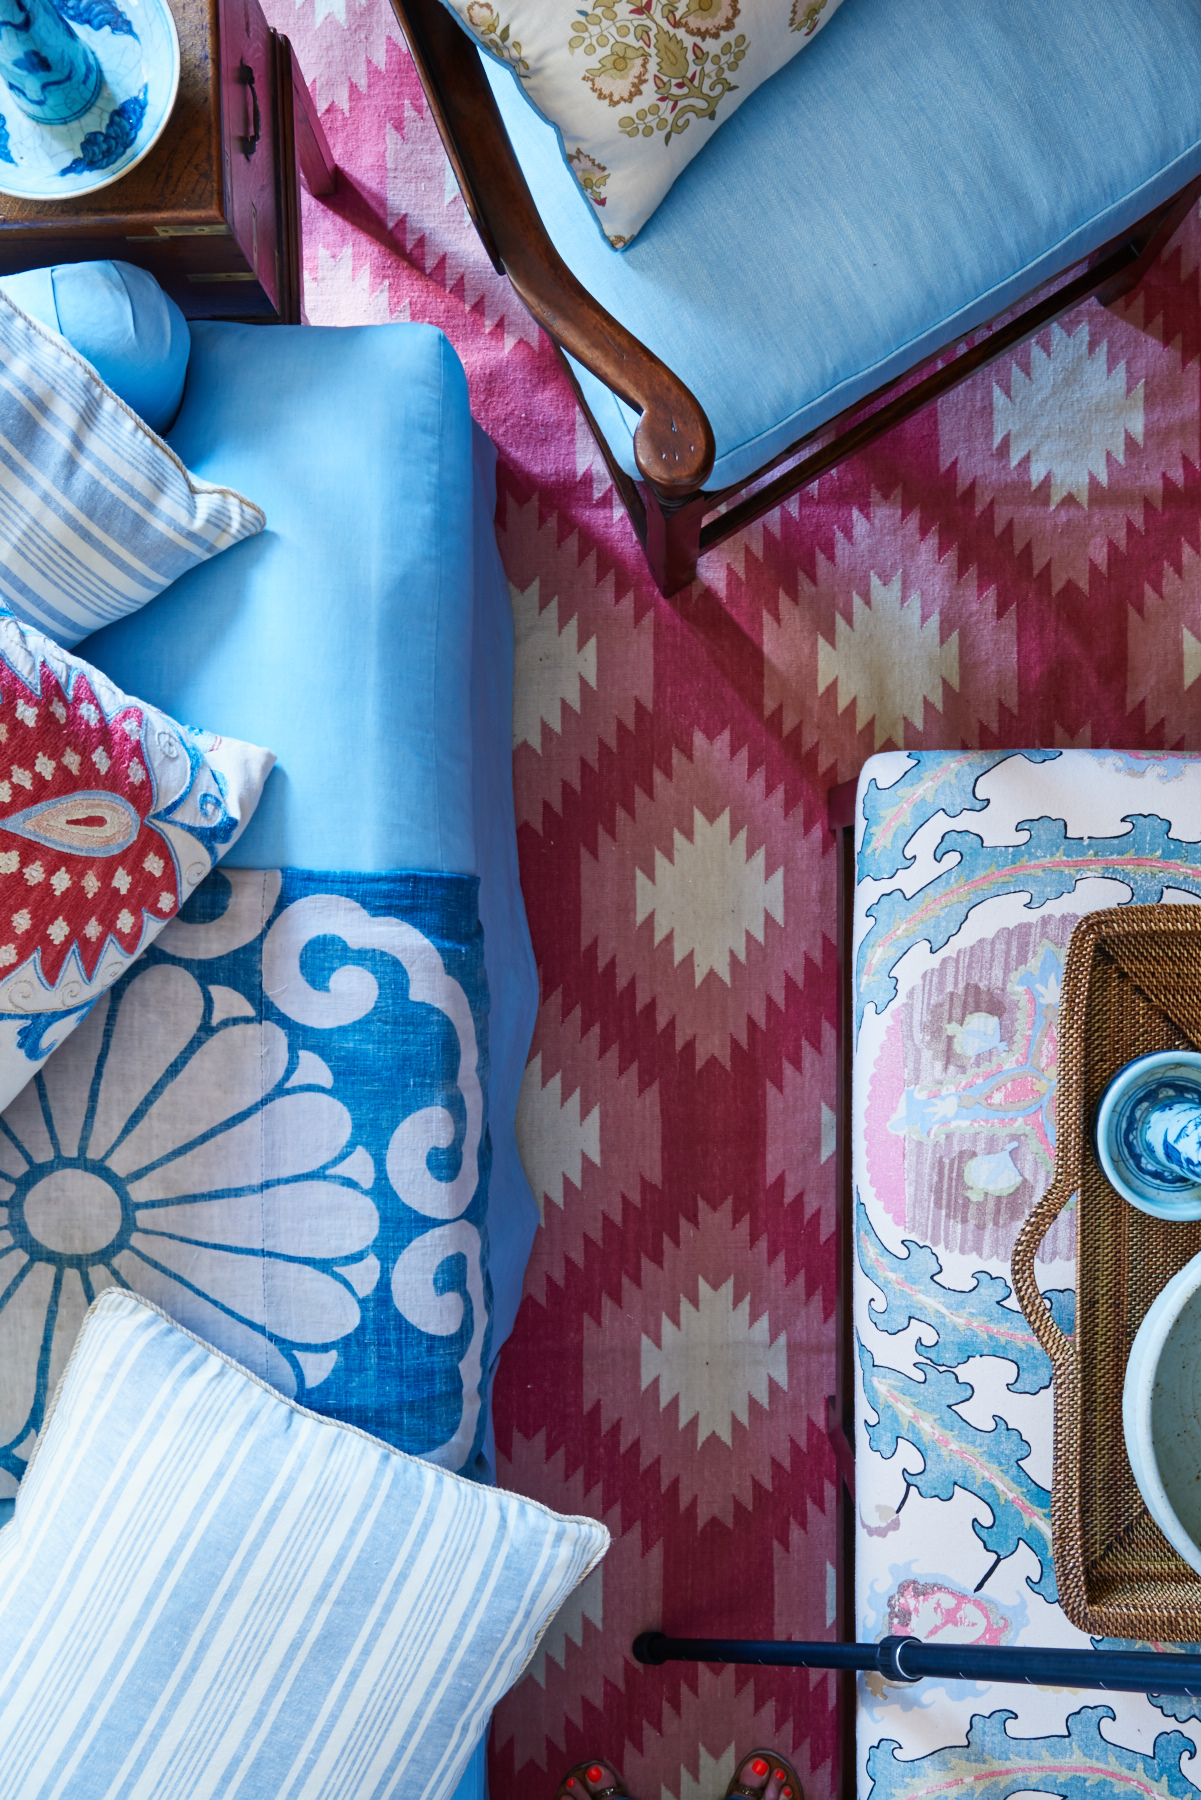 Various patterns of pillows and blue chairs